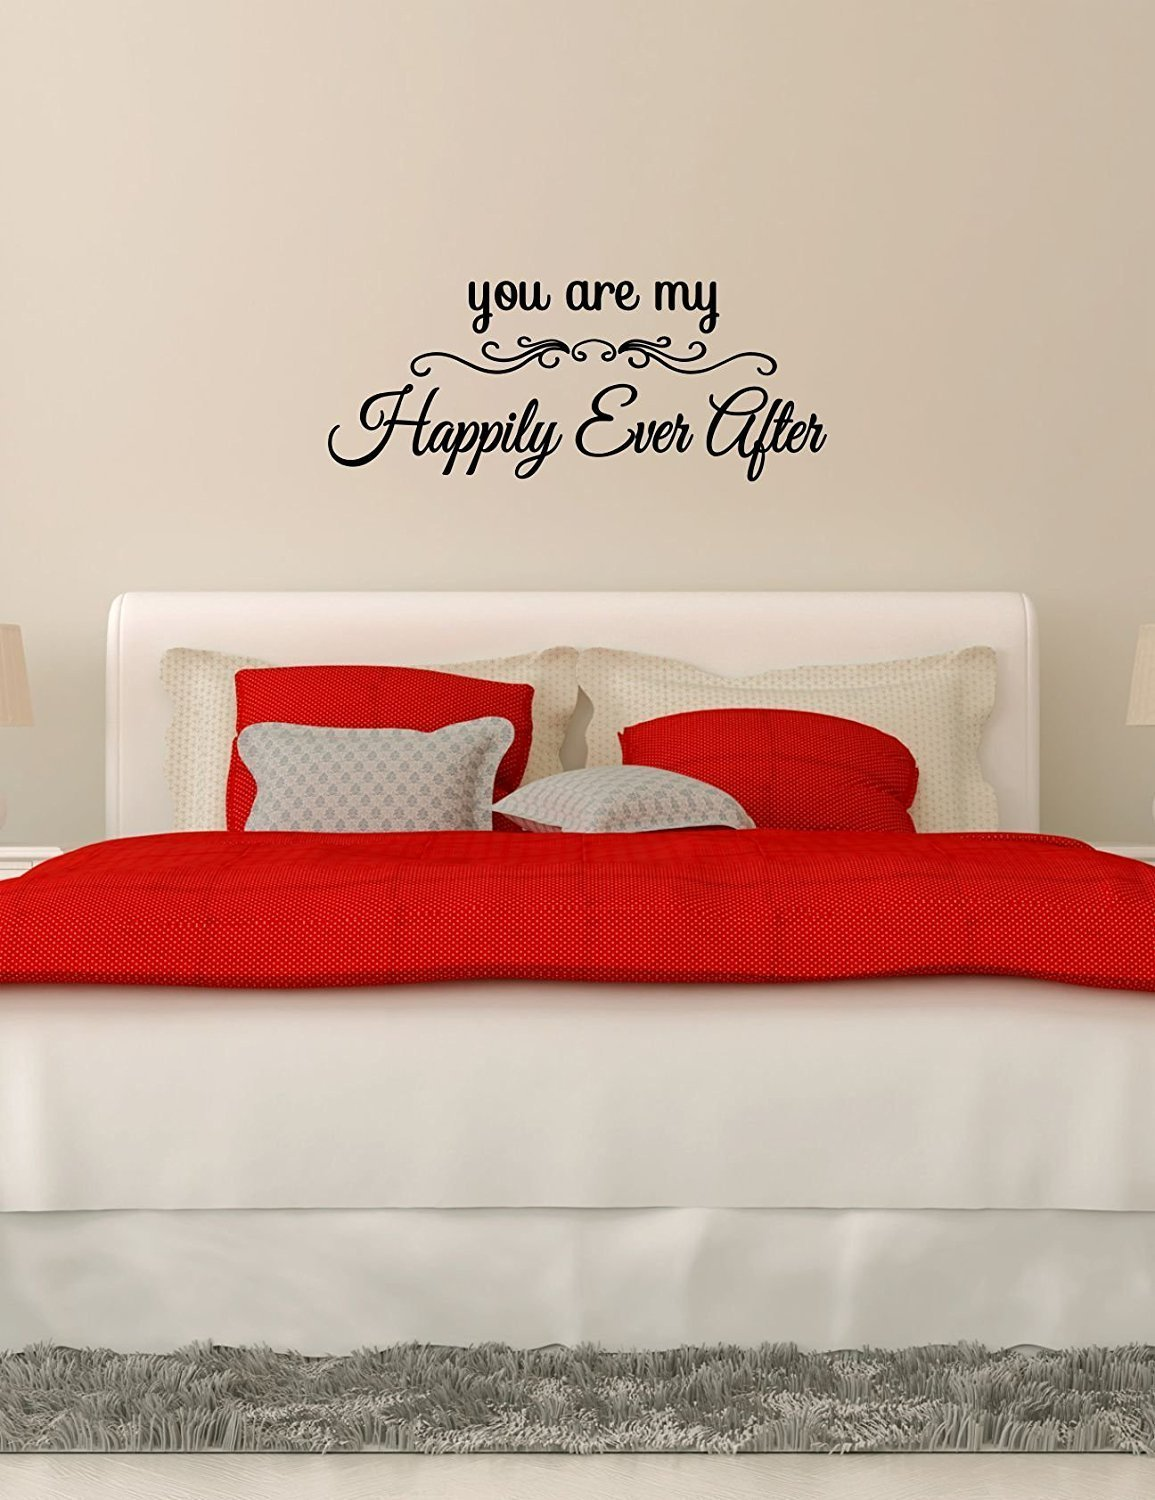 You Are My Happily Ever After vinyl wall decal best Christmas gift husband